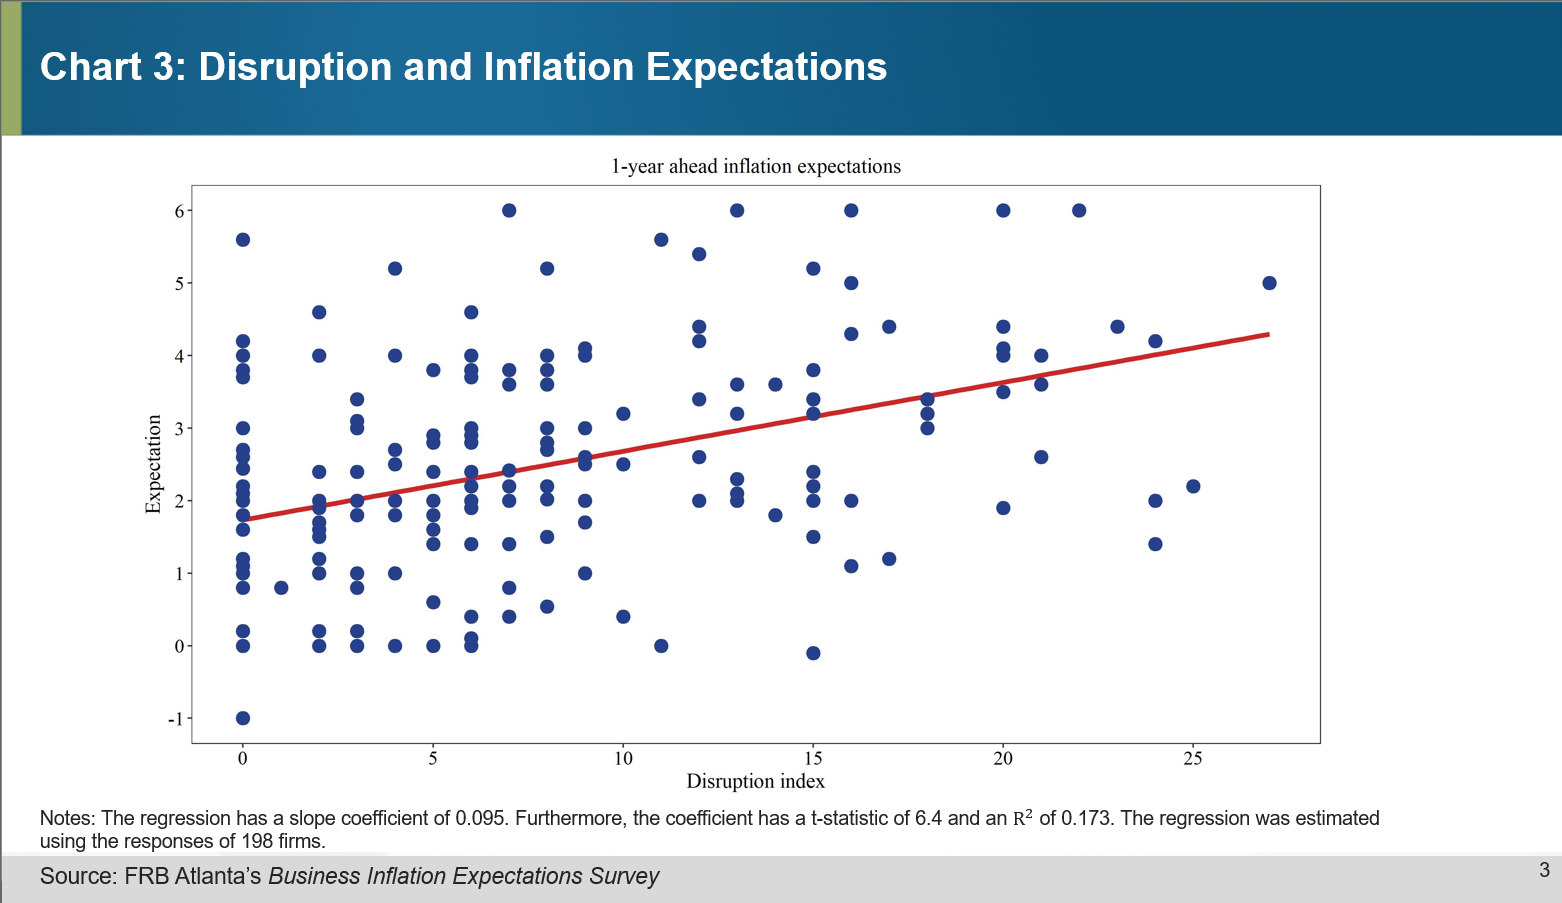 Chart 3 of 4: Disruption and Inflation Expectations